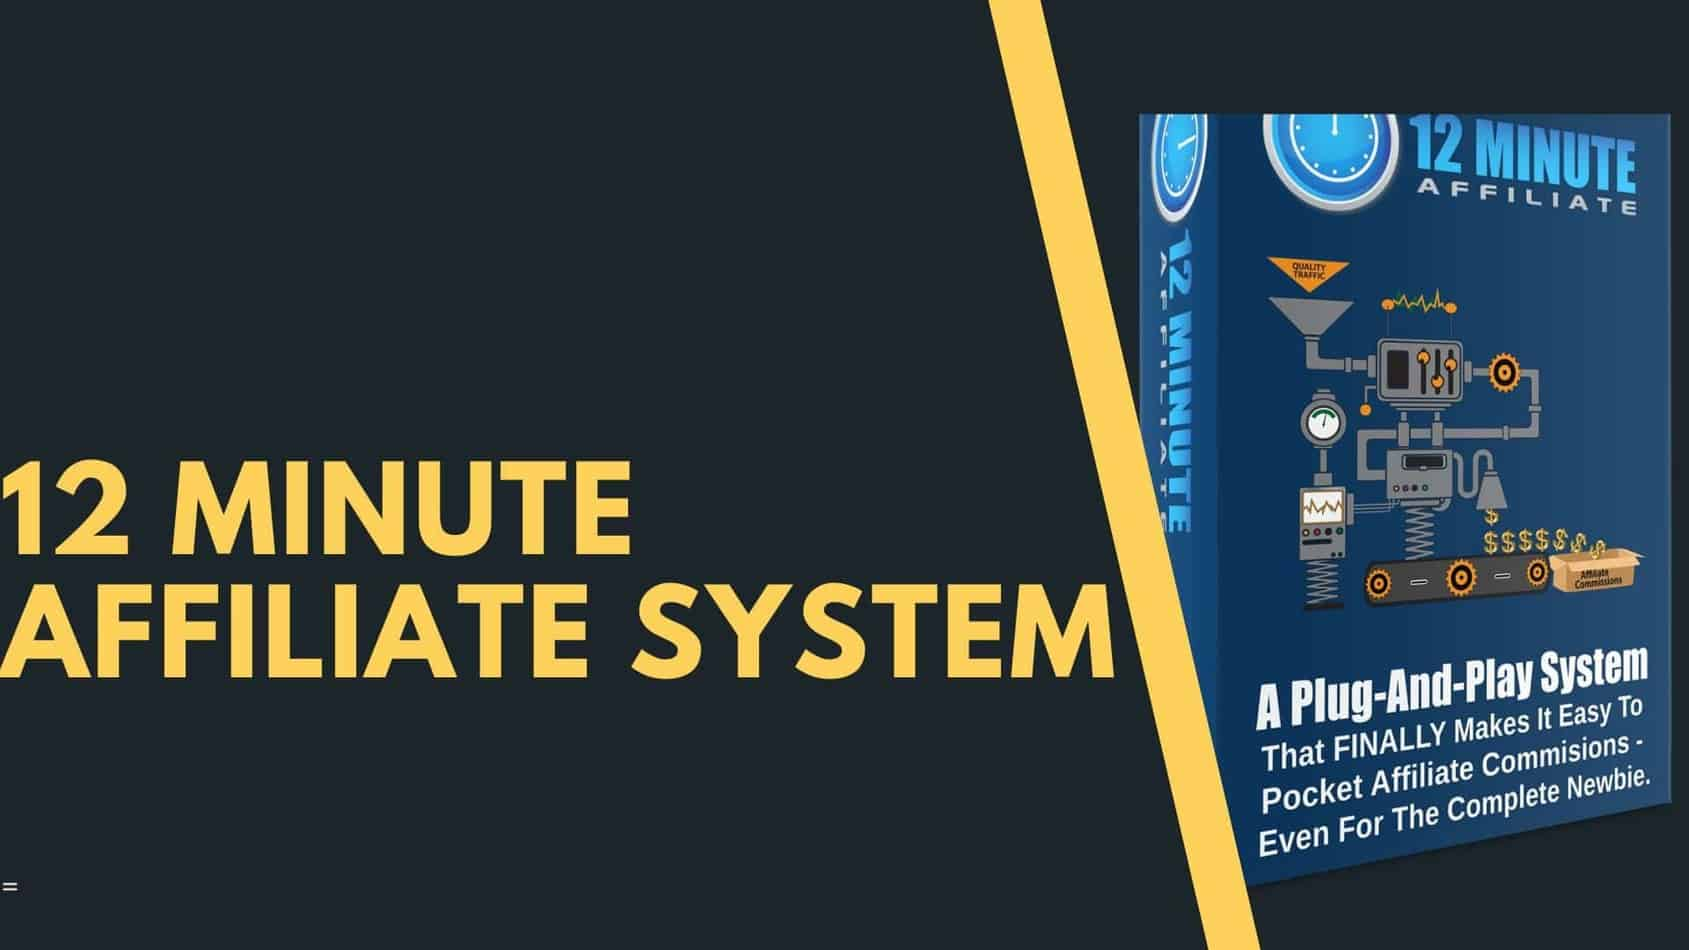 Promo Code Upgrade Fee 12 Minute Affiliate System